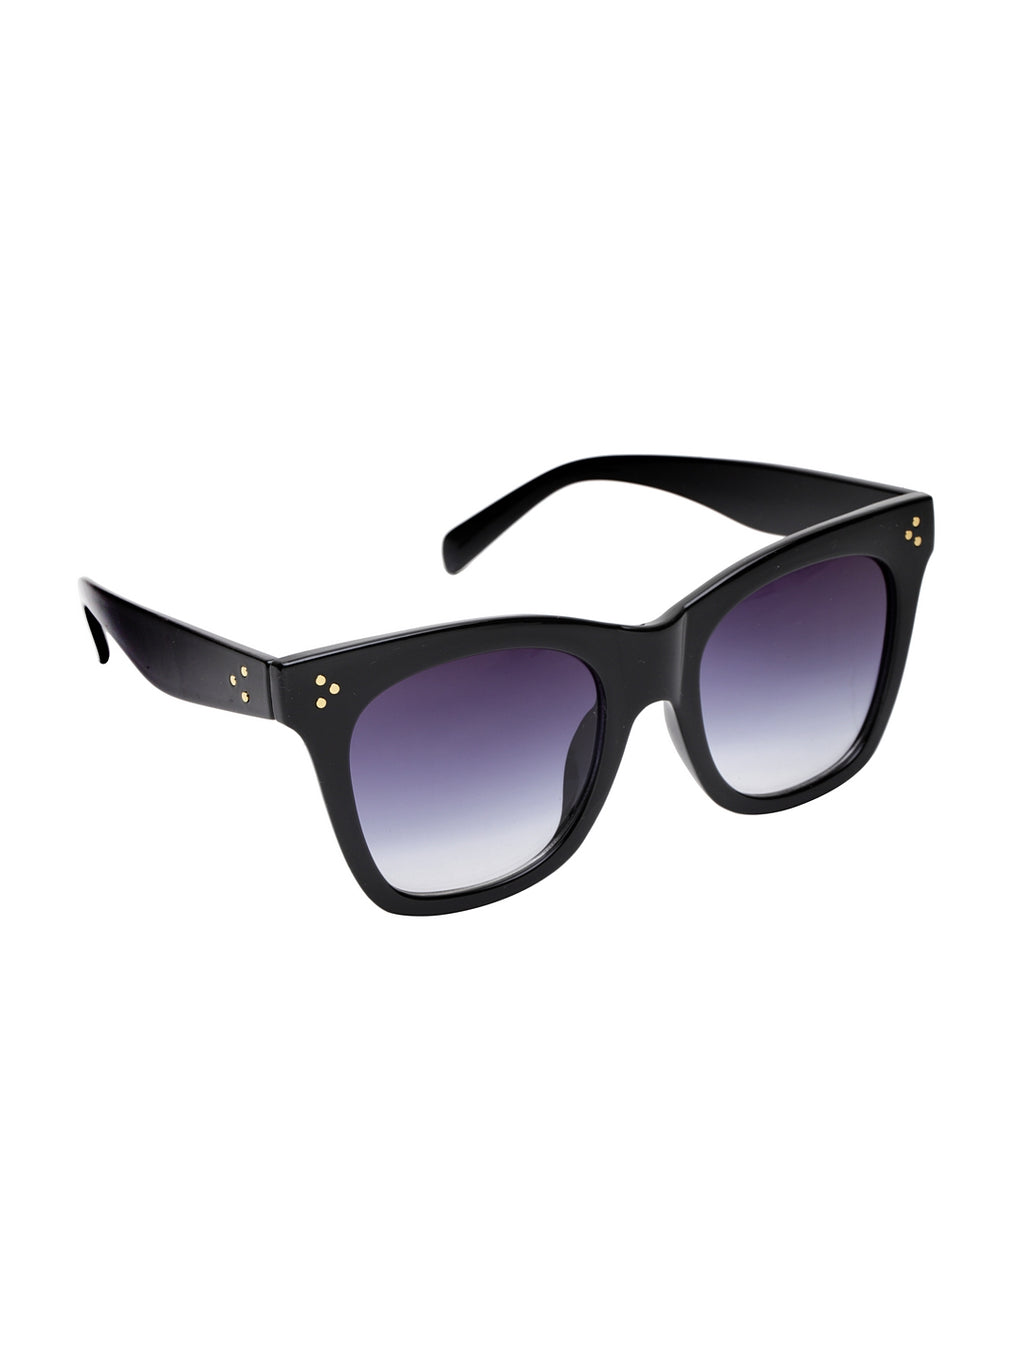 Avant-Garde Paris Cateye Sun Designer Gradient Fashionable Sunglasses